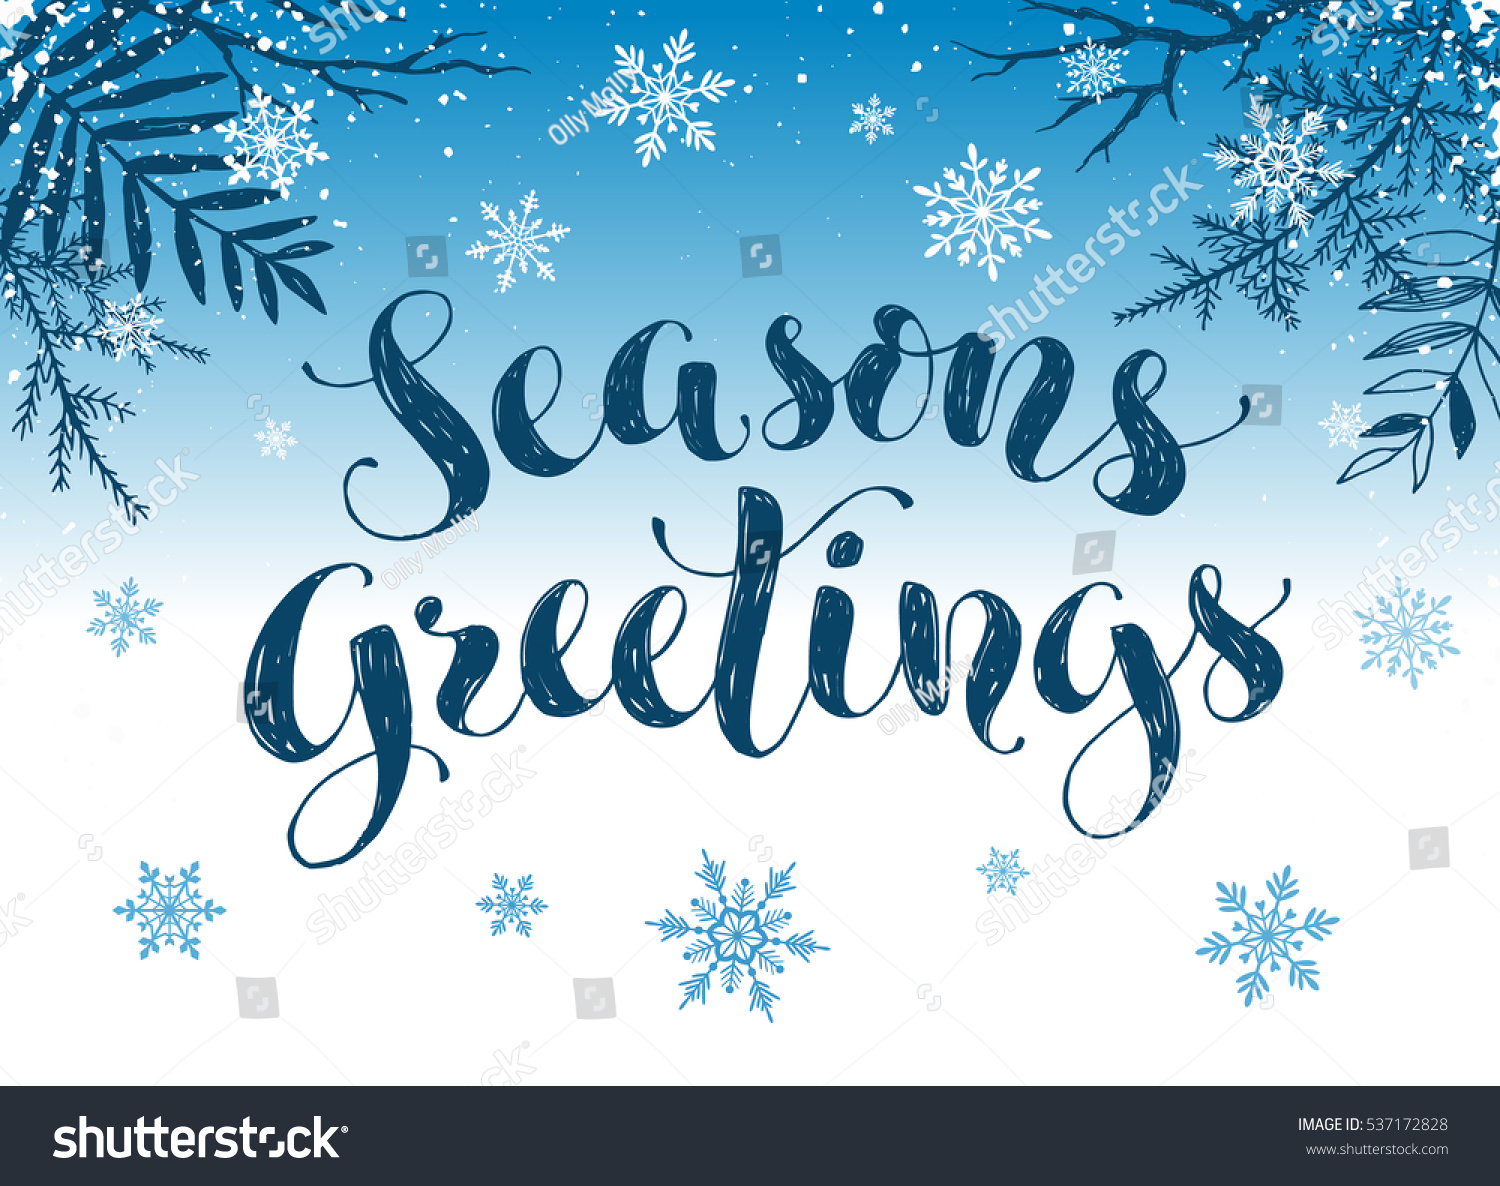 happy holidays postcard template modern new year lettering with snowflakes and branches on blue background